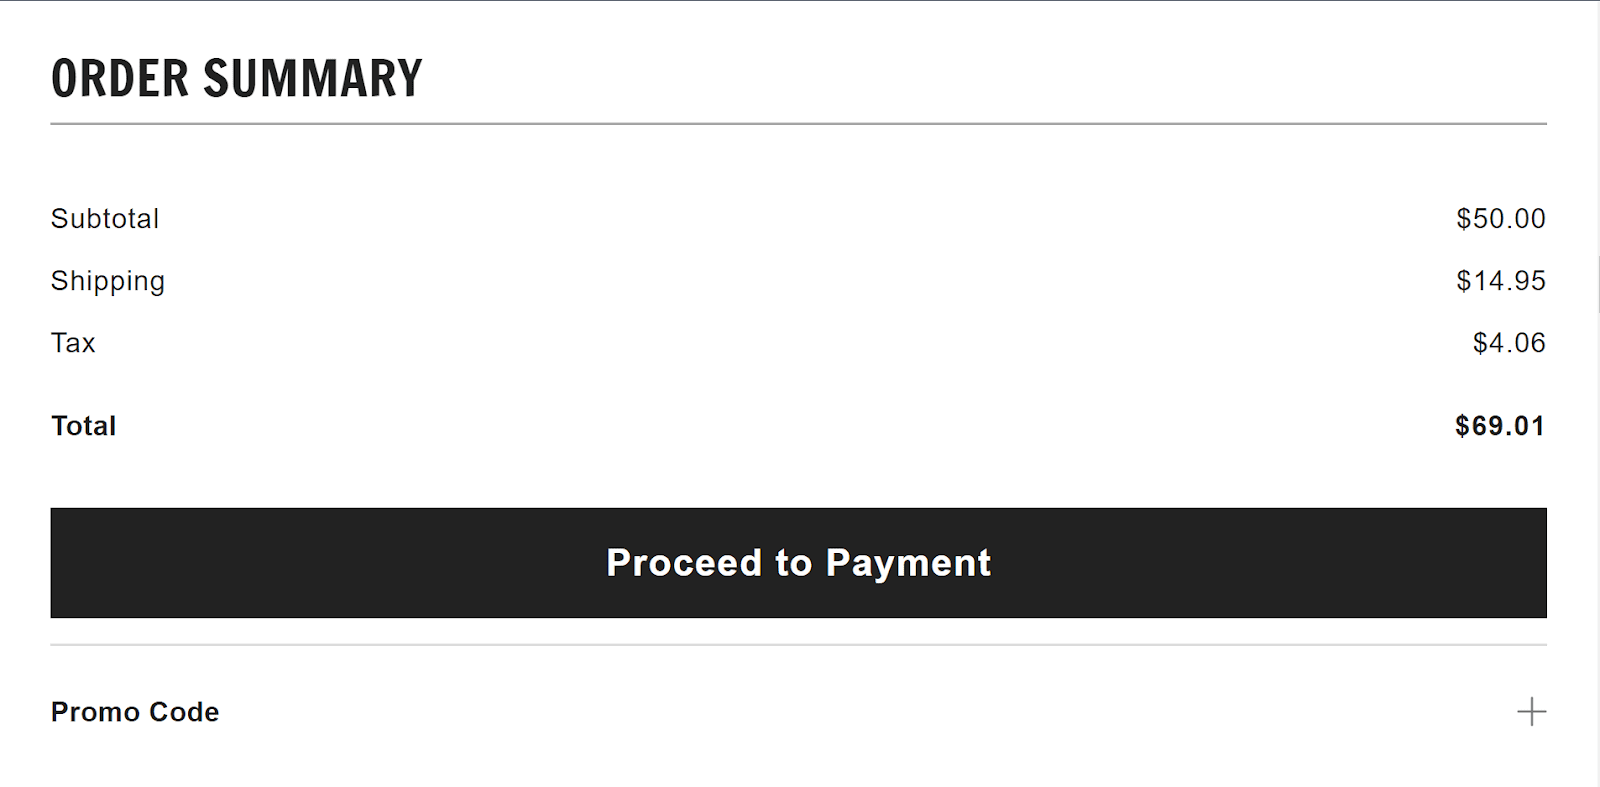 A checkout order summary, showing a subtotal of $50 that is increased by shipping and tax to be $69.01.